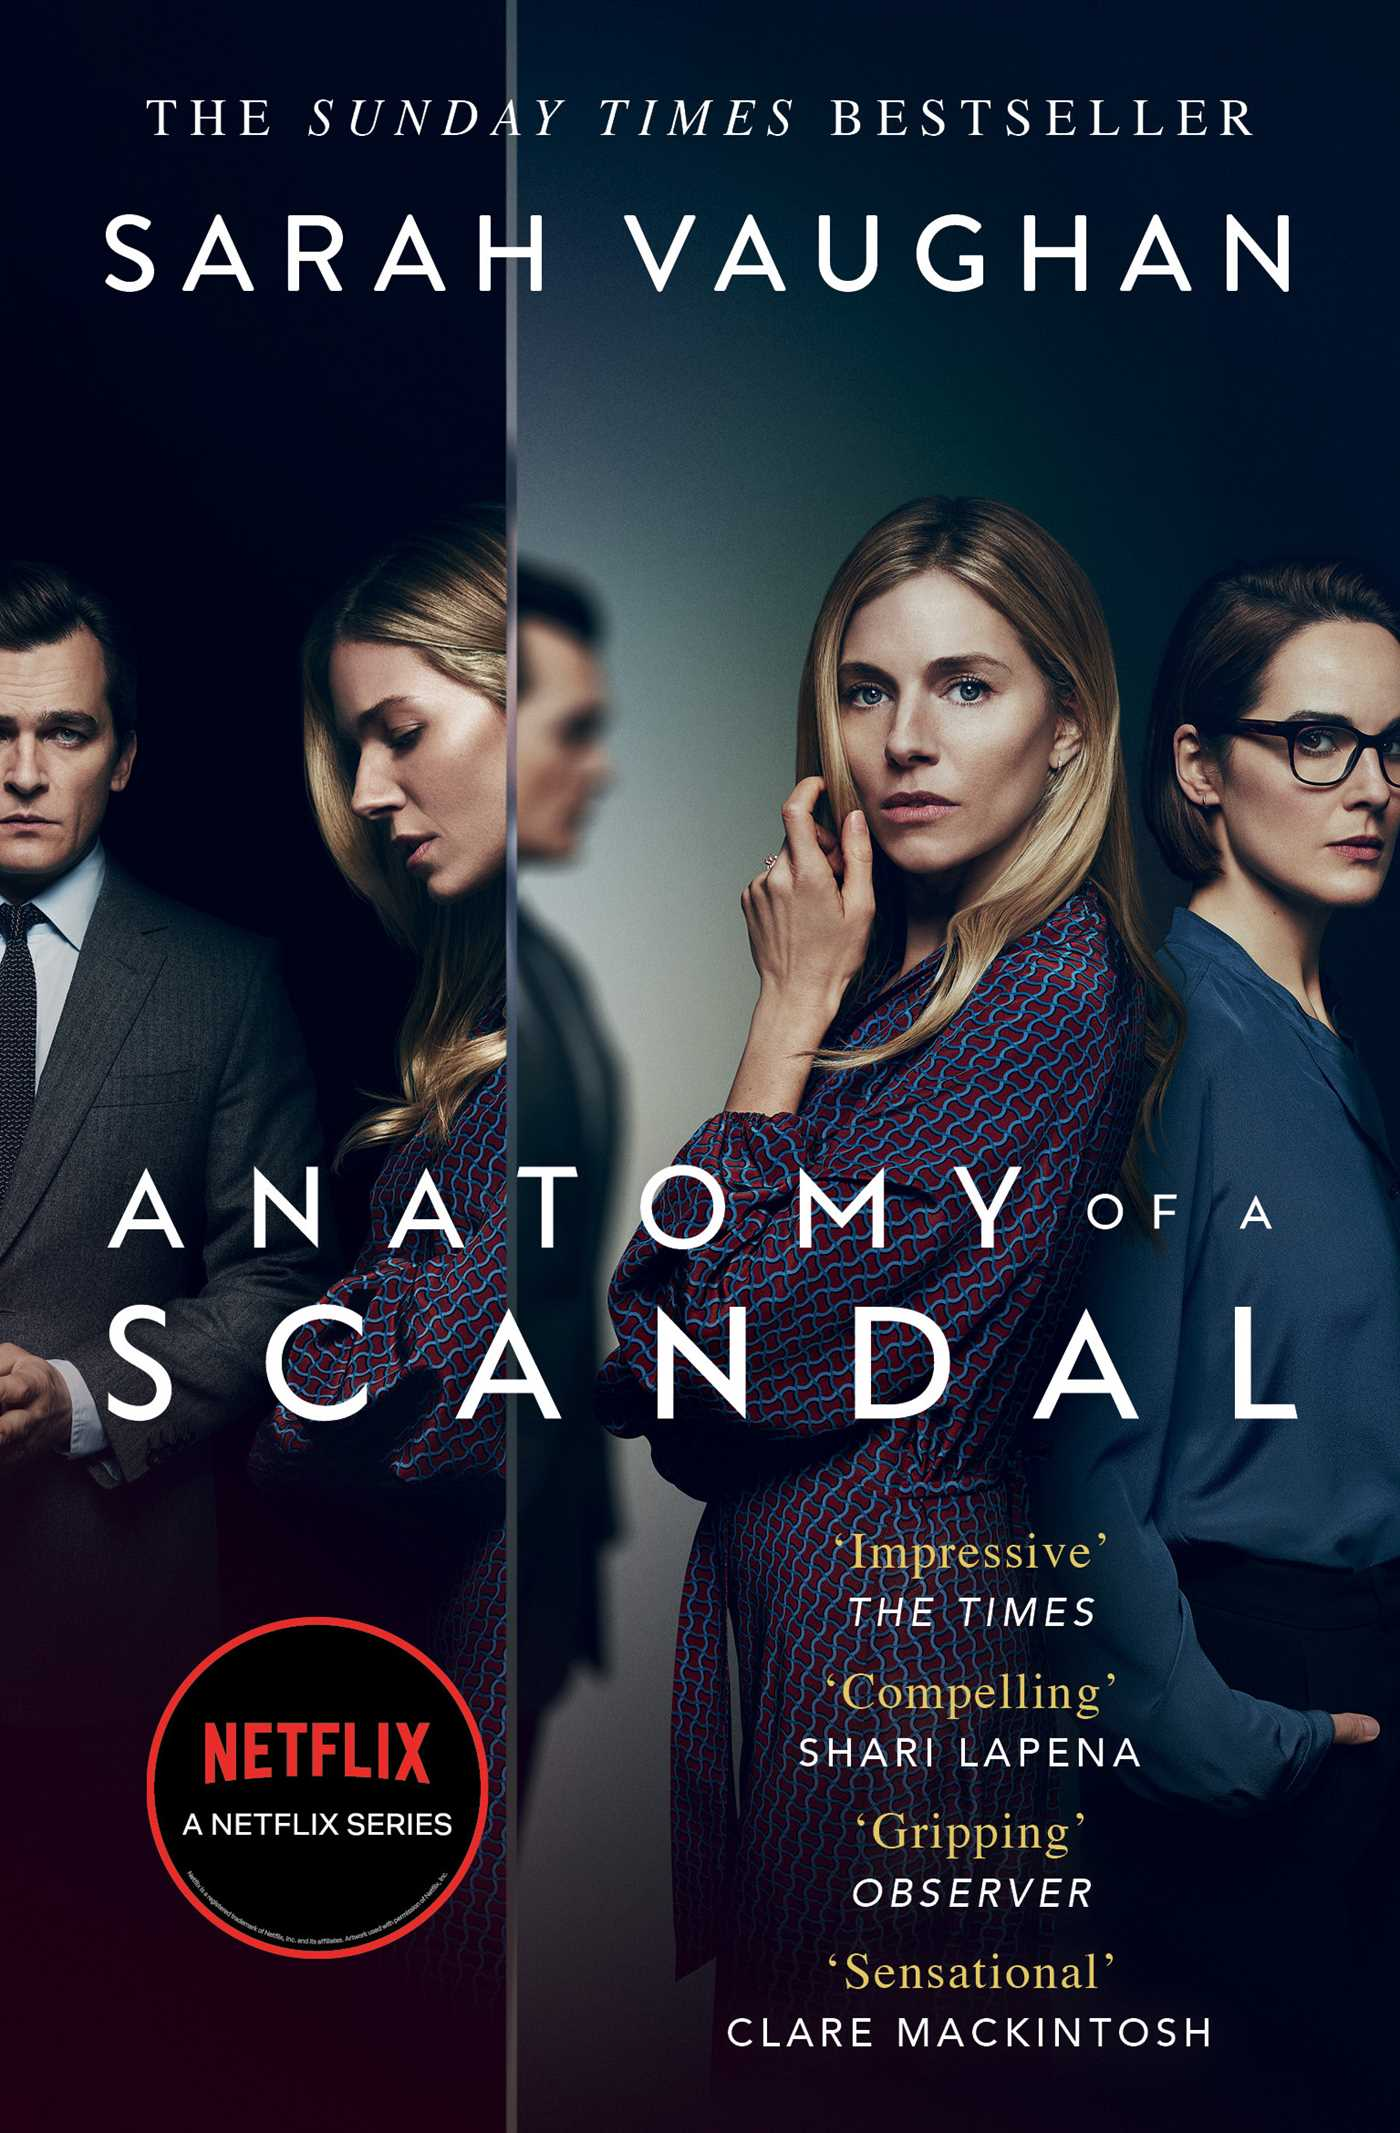 Anatomy of a scandal 9781471165016 hr